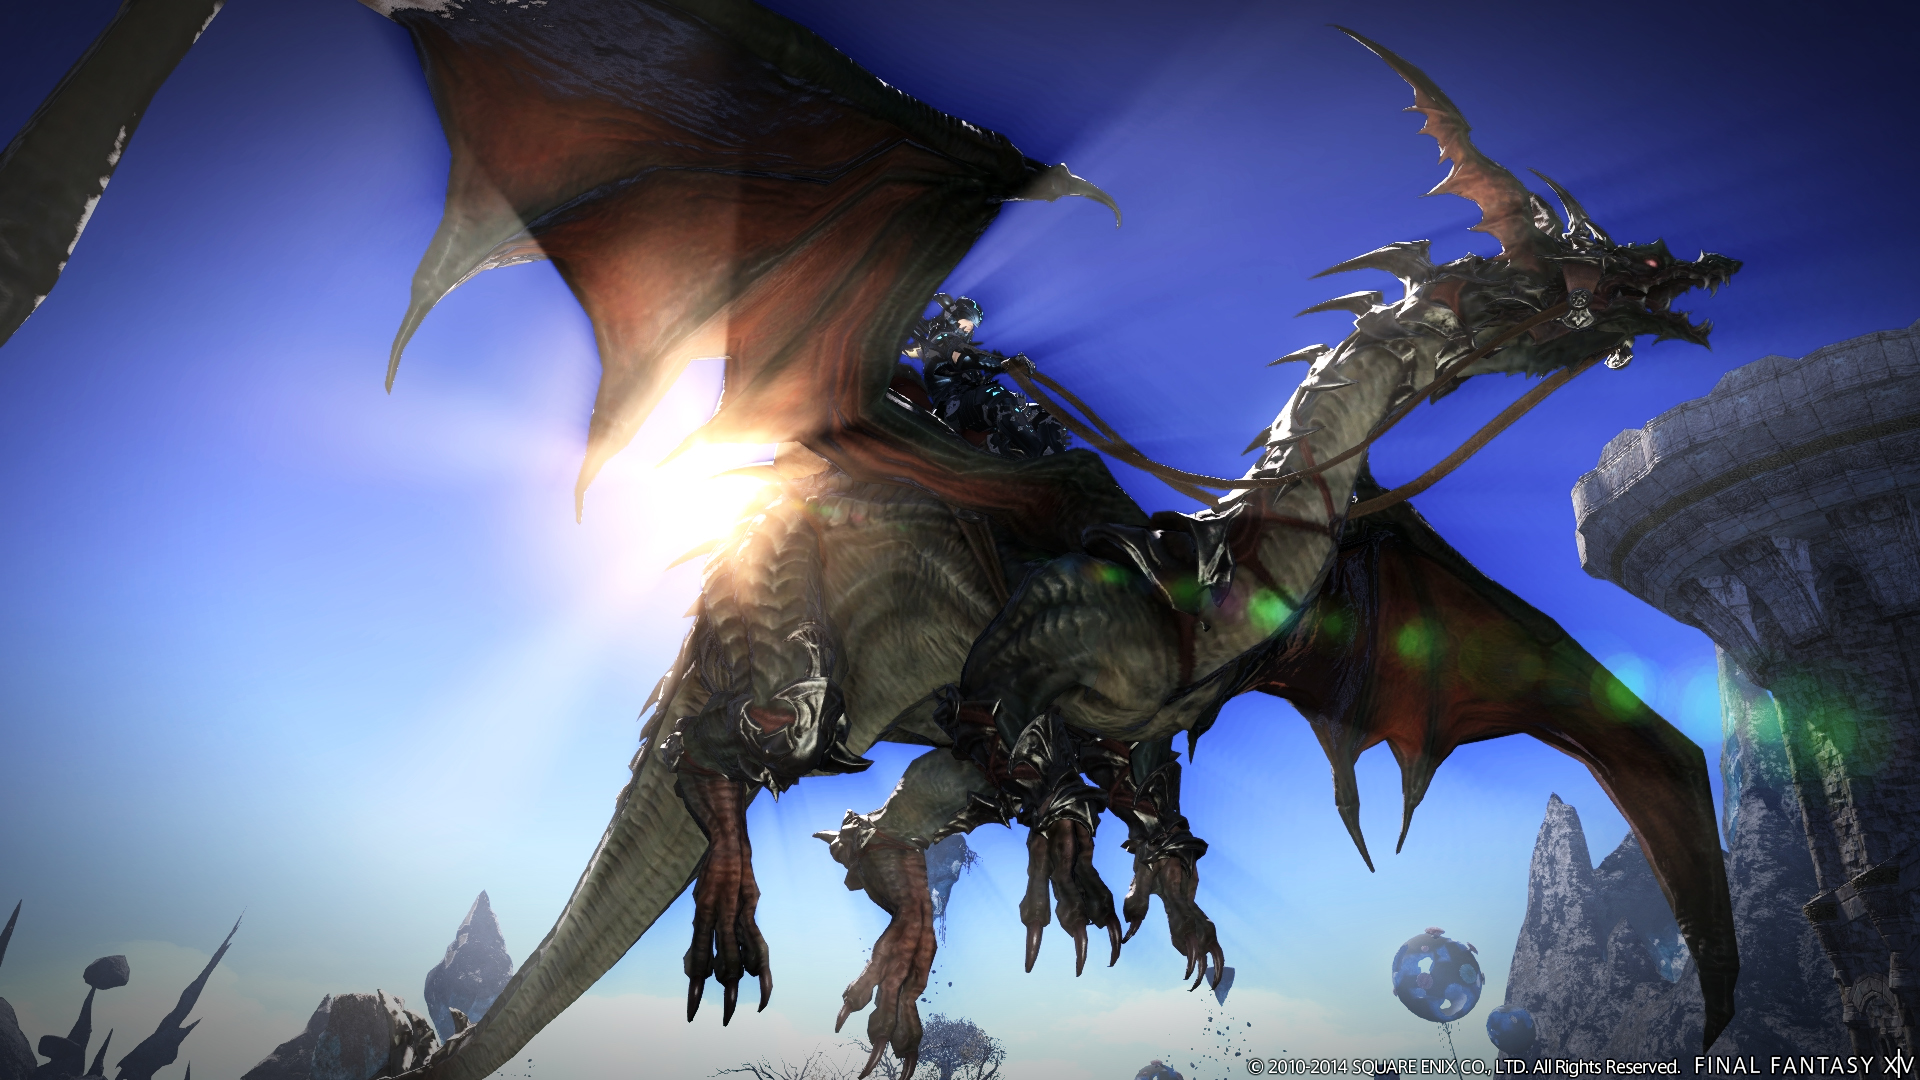 Final Fantasy XIV A Realm Reborn dlc Heavensward 2212 15